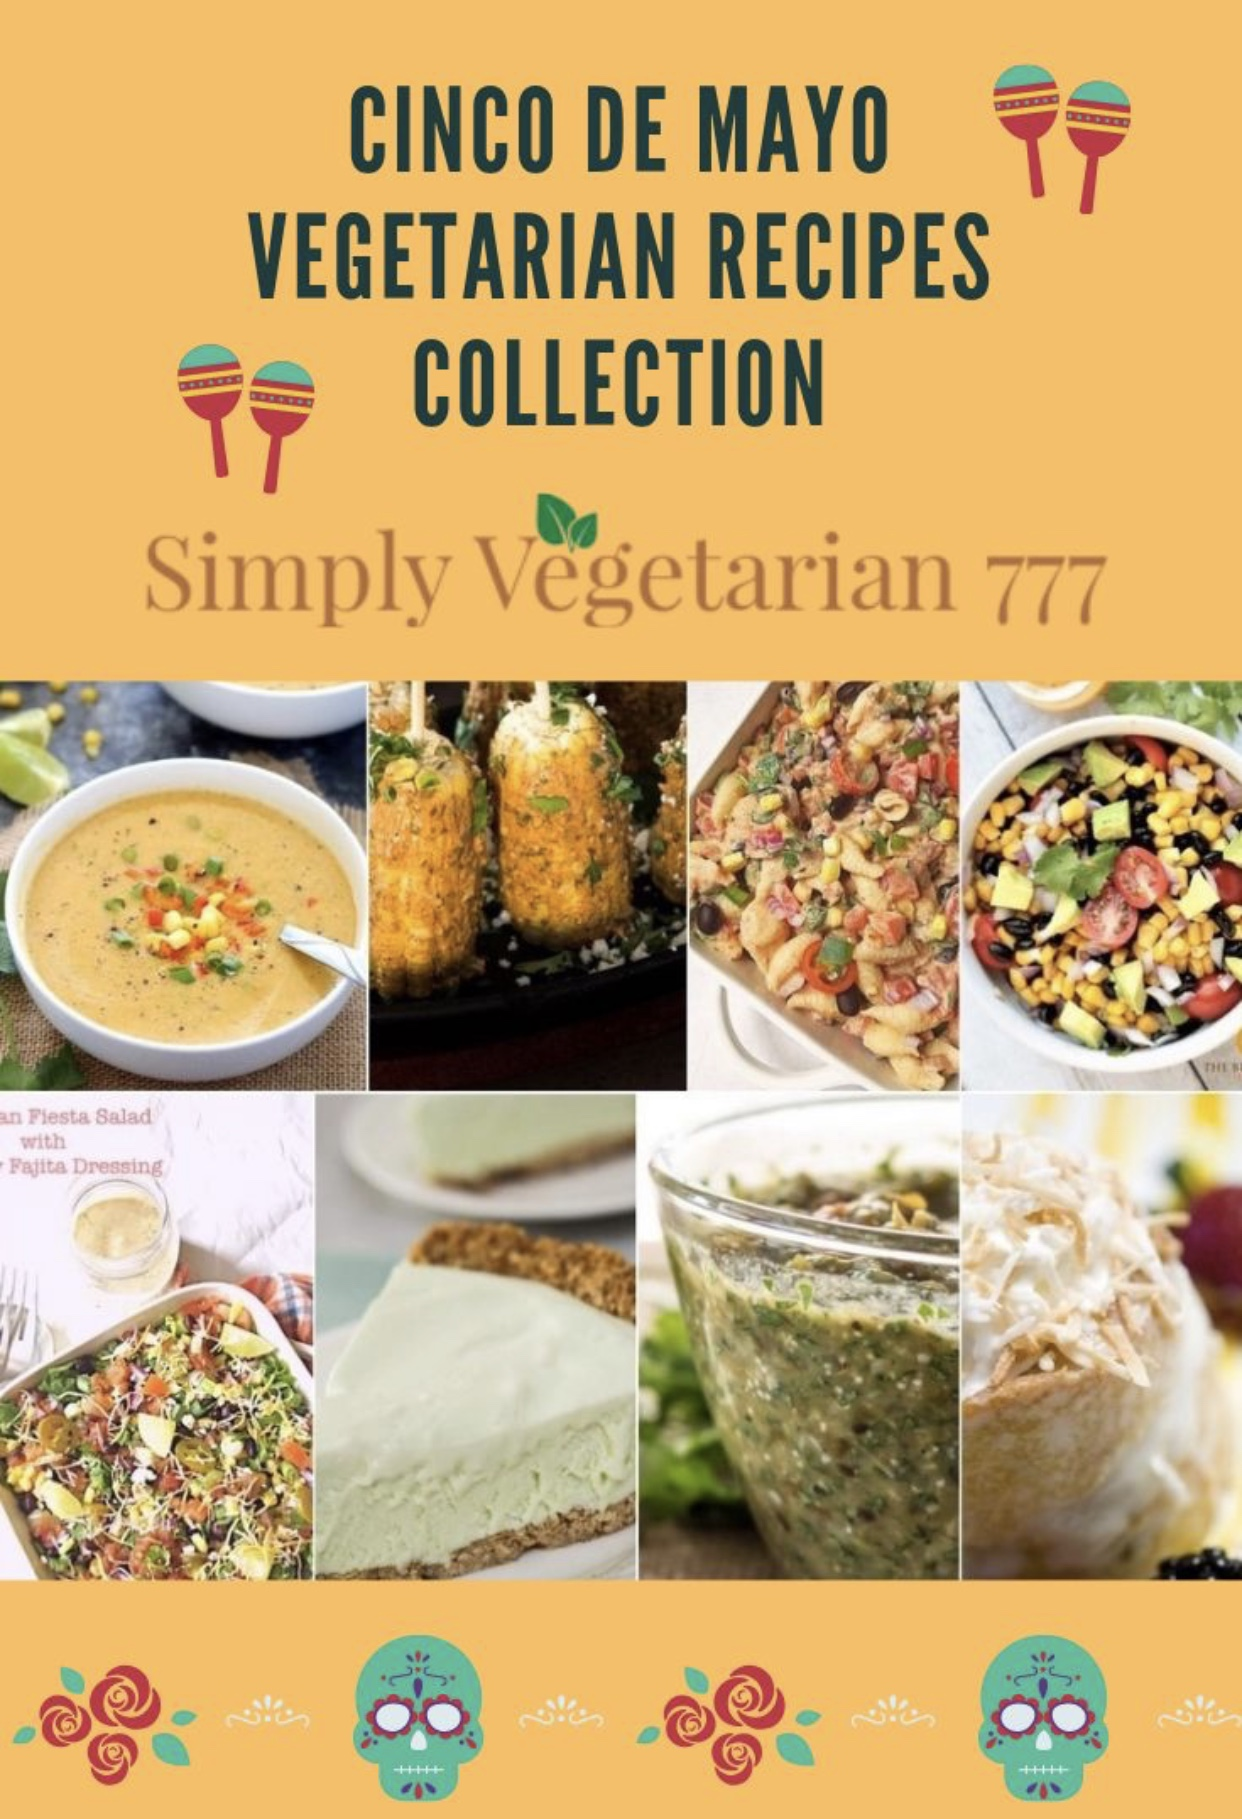 Vegetarian Easy Recipes for Cinco de Mayo is a collection of delicious recipes for your party time. #texmexappetizers #mexicanrecipes #cincodemayorecipes #vegetarianmexican